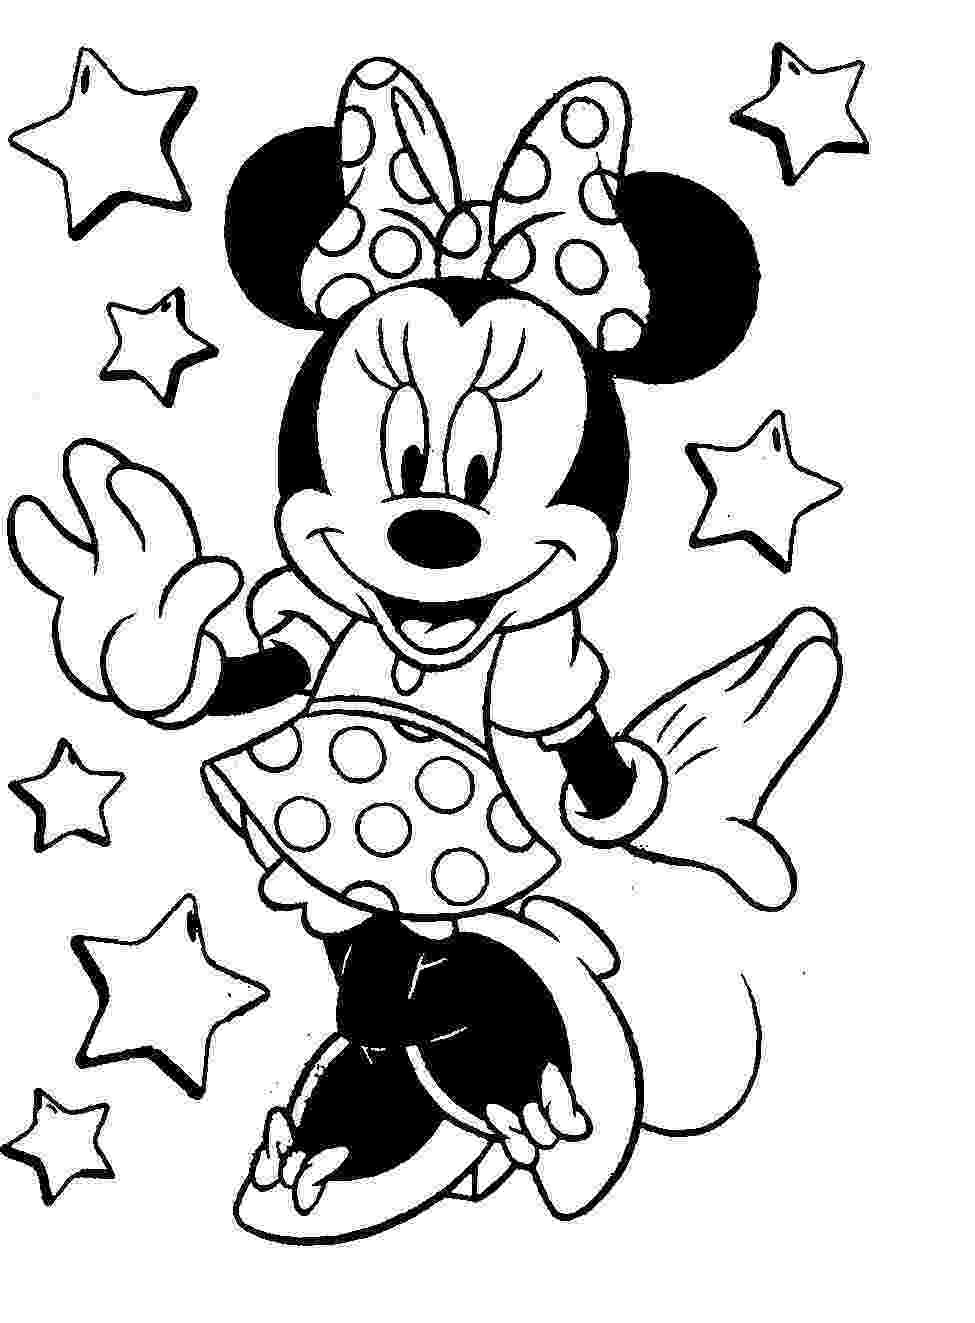 minnie mouse coloring sheet free disney minnie mouse coloring pages sheet coloring minnie mouse